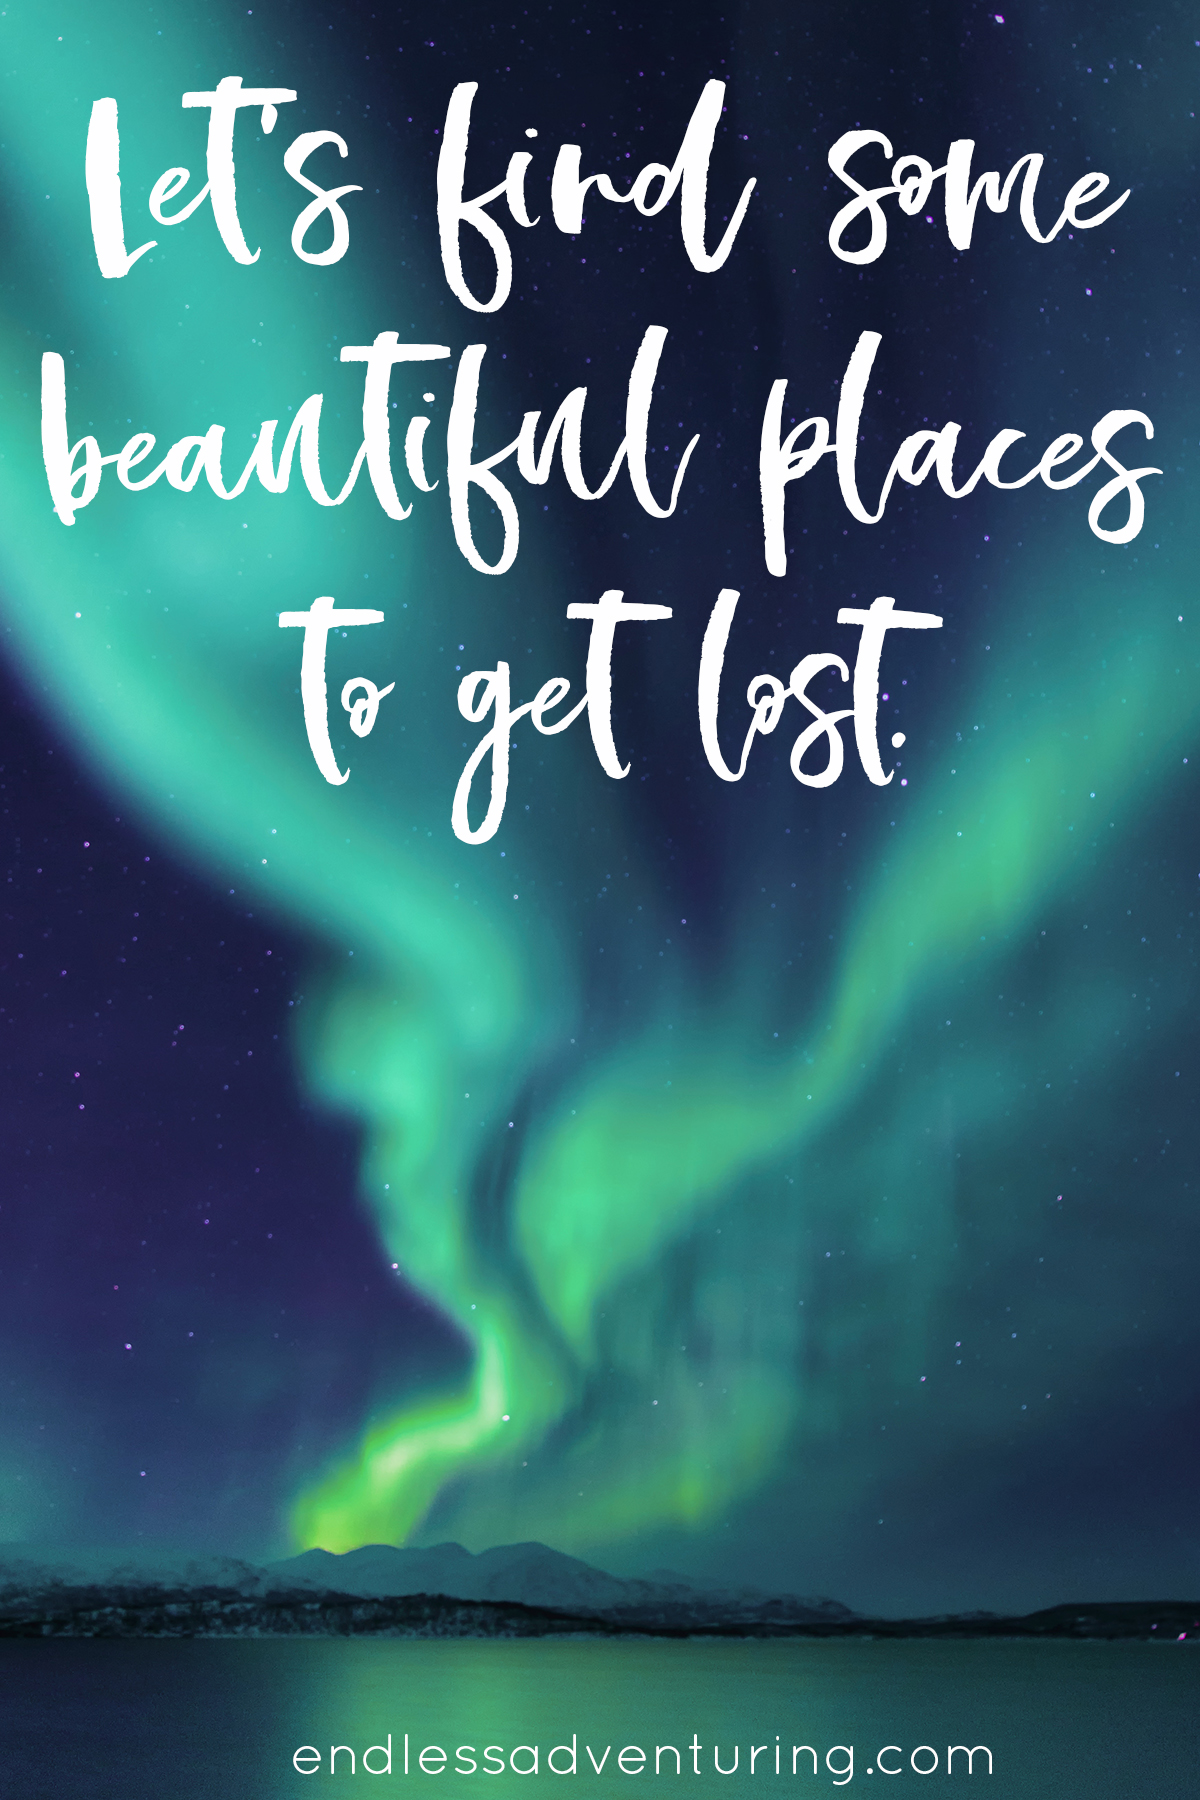 Adventure Quotes - Let's Find Some Beautiful Places to Get Lost